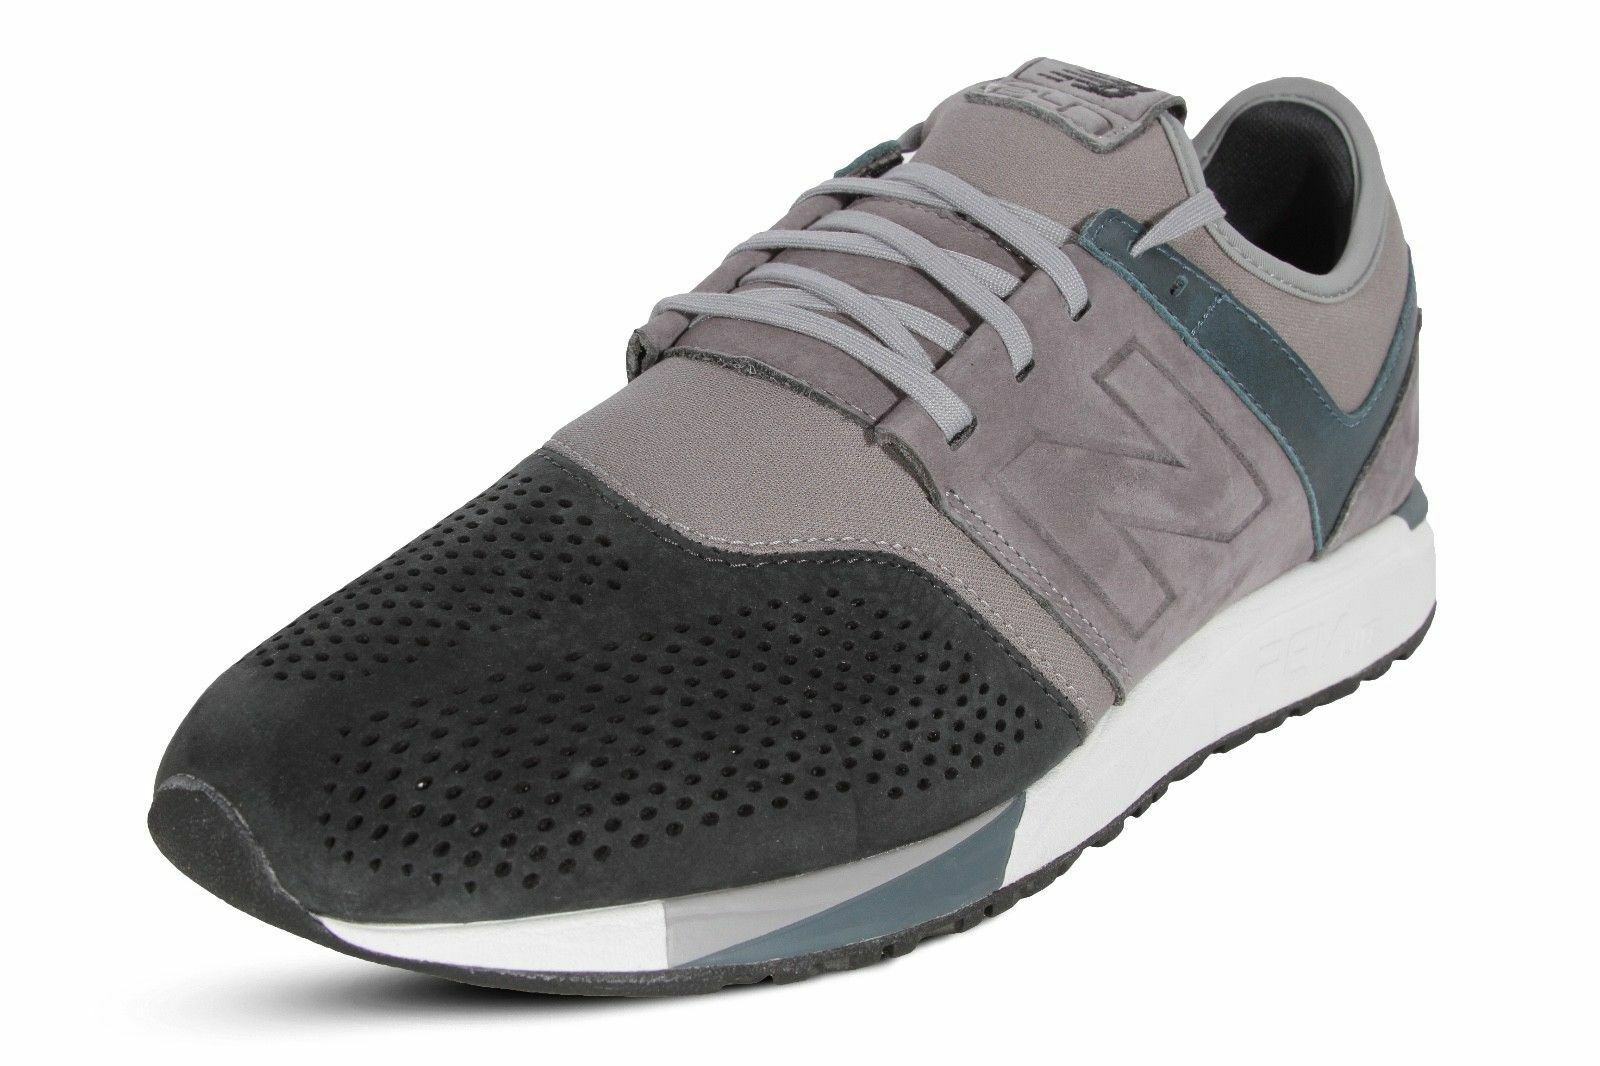 New Balance Men's 247 Classic Casual Sneakers shoes MRL247N4 Grey Navy